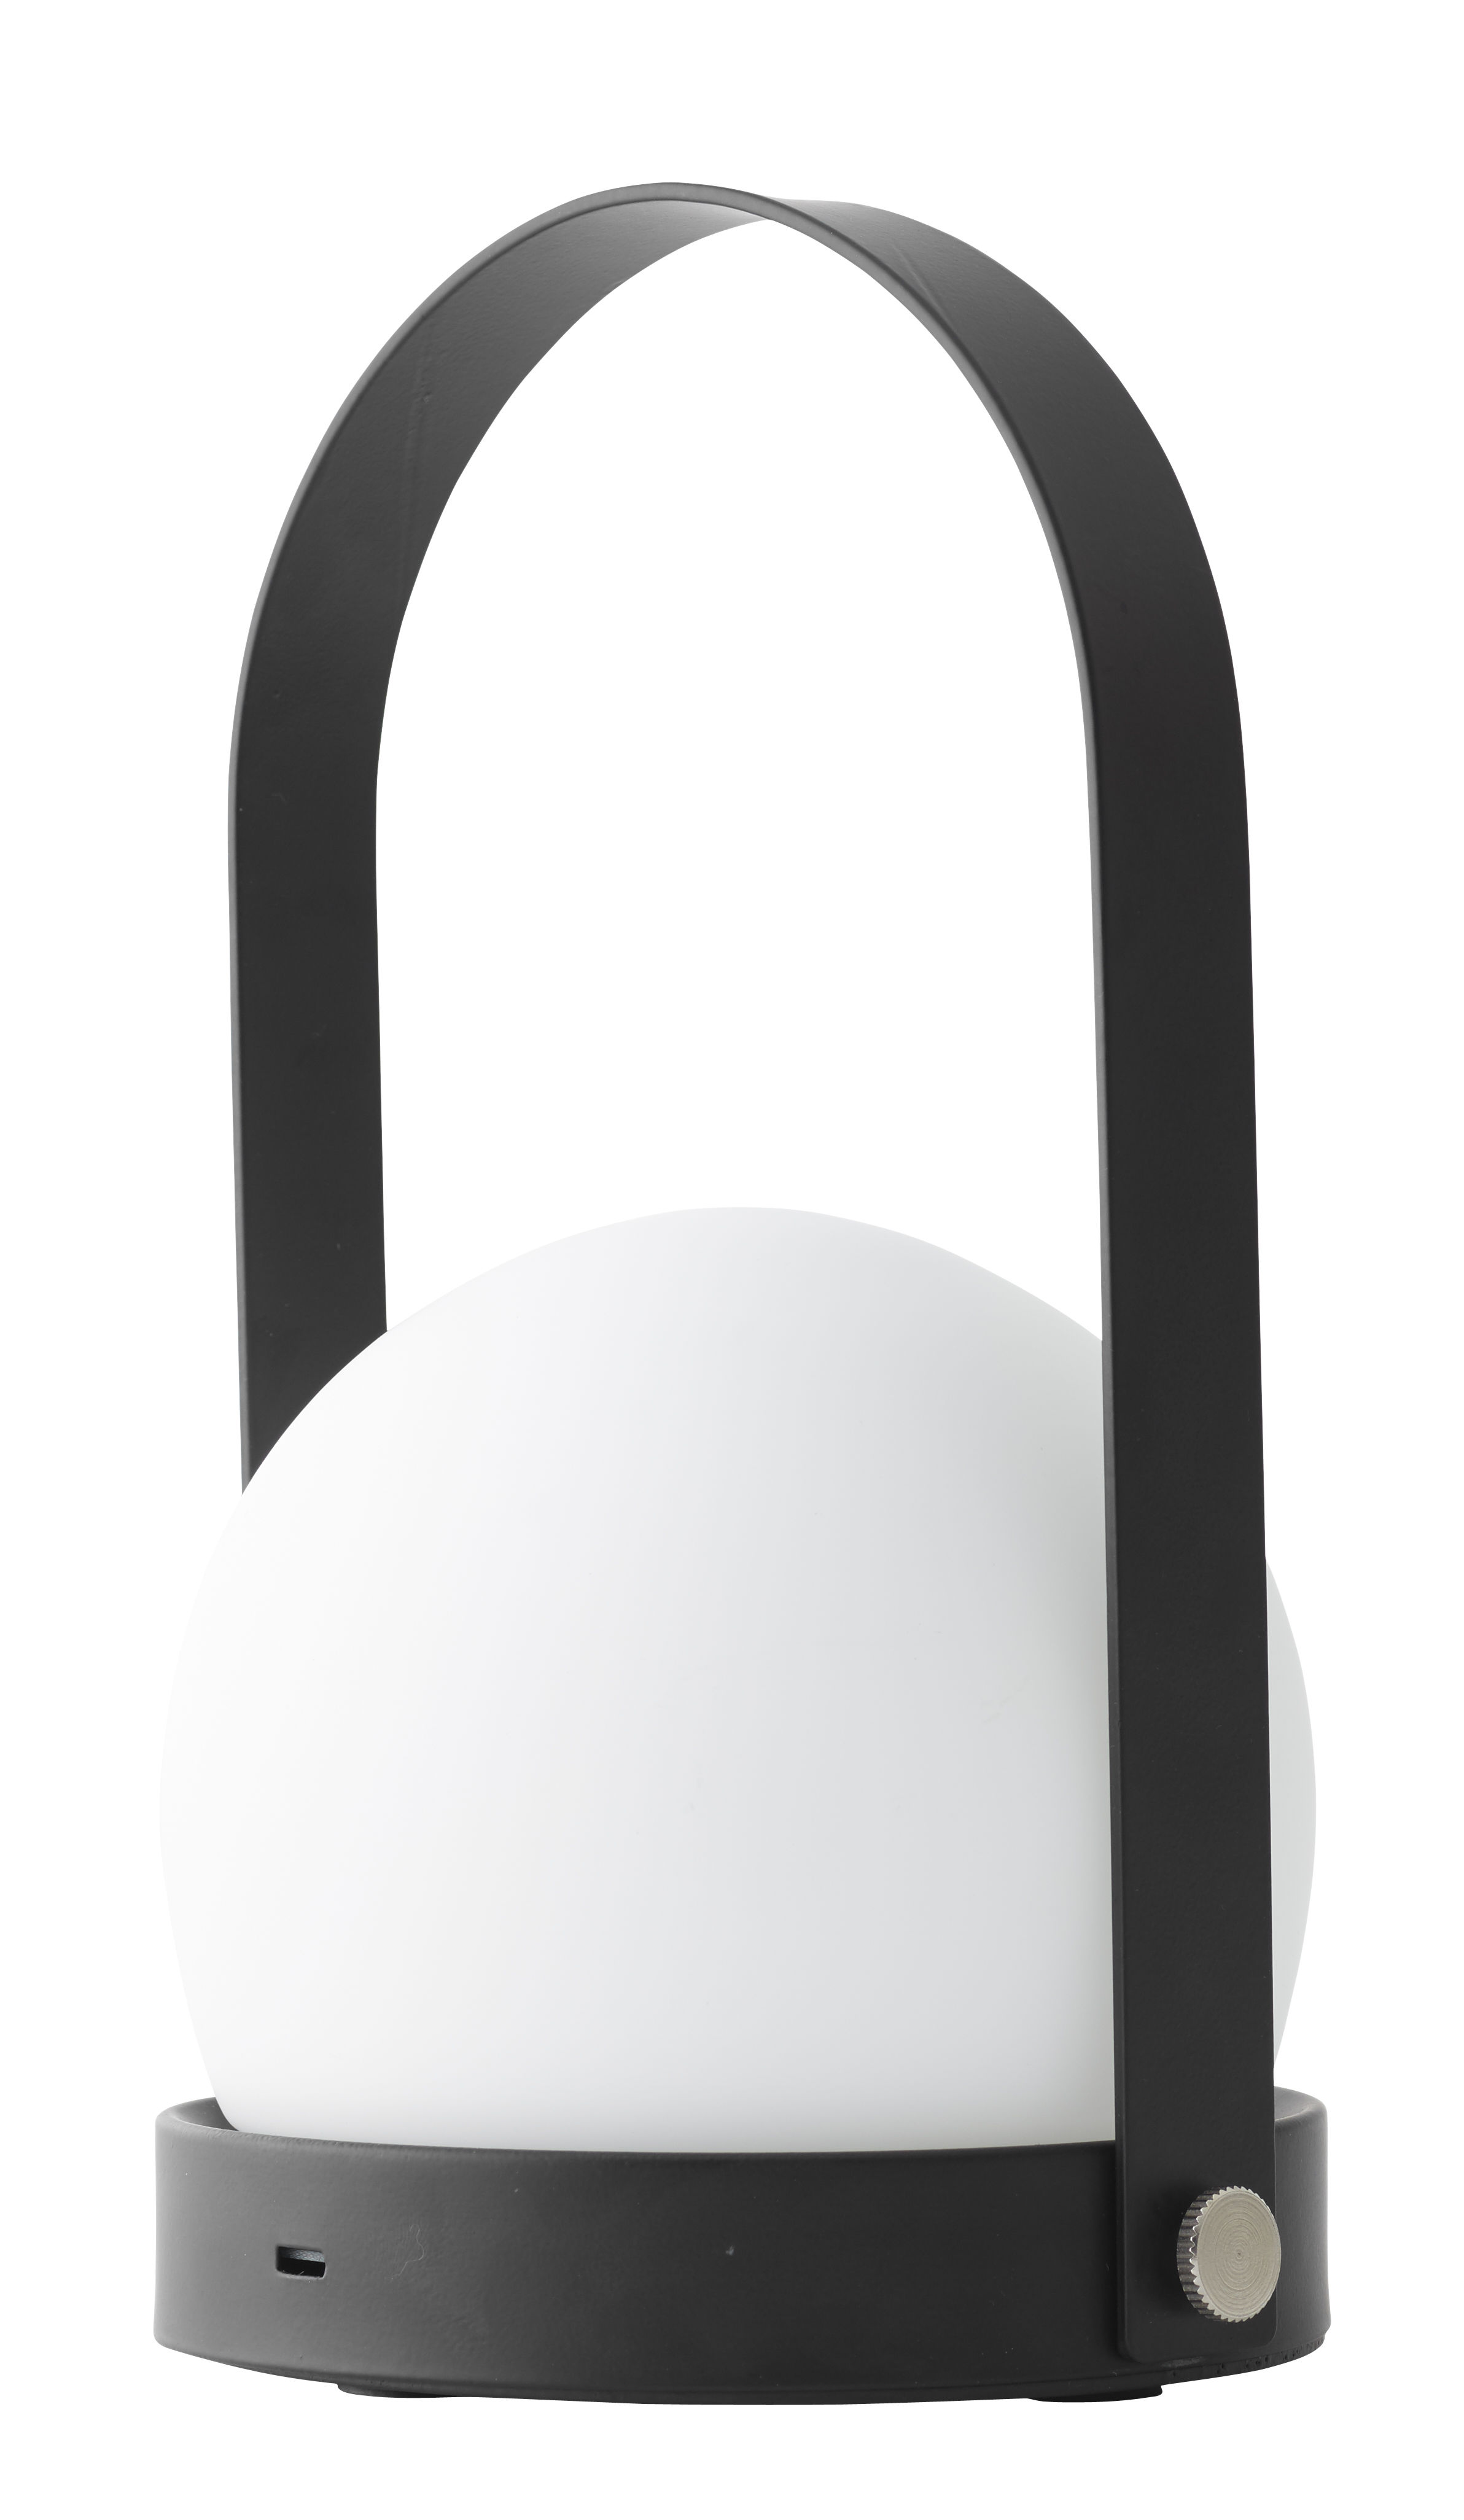 Lighting - Table Lamps - Carrie LED Wireless lamp - H 24,5 cm - LED - USB charging by Menu - Black & white - Opal Glass, Powder steel